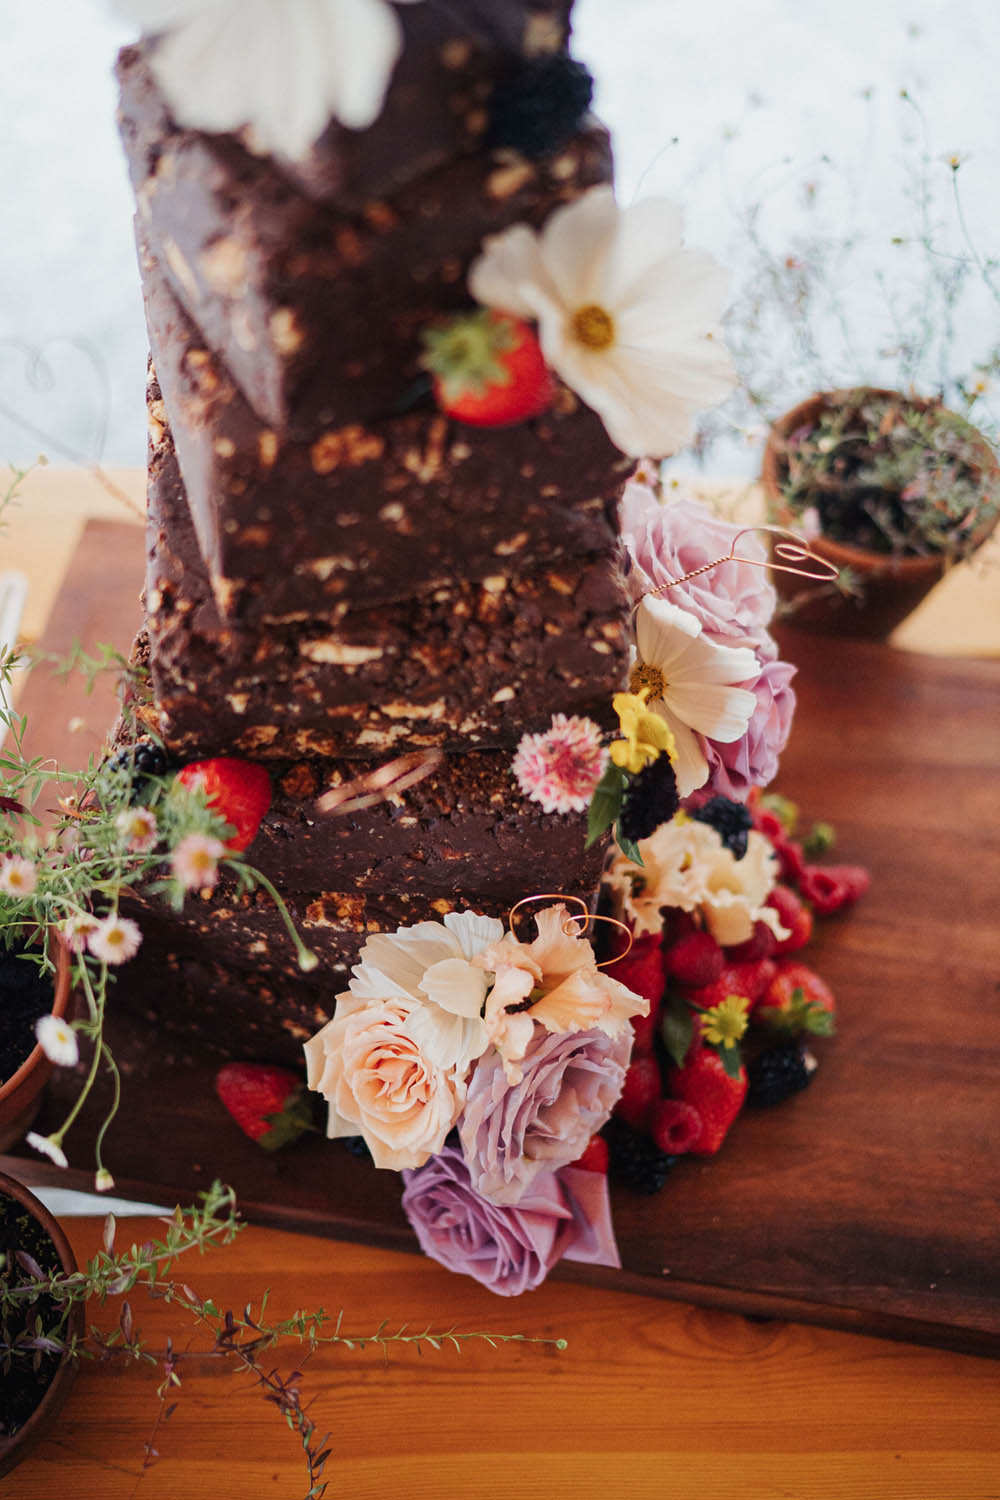 Chocolate Death Cake Flowers Tall Tipi Garden Wedding Kit Myers Photography